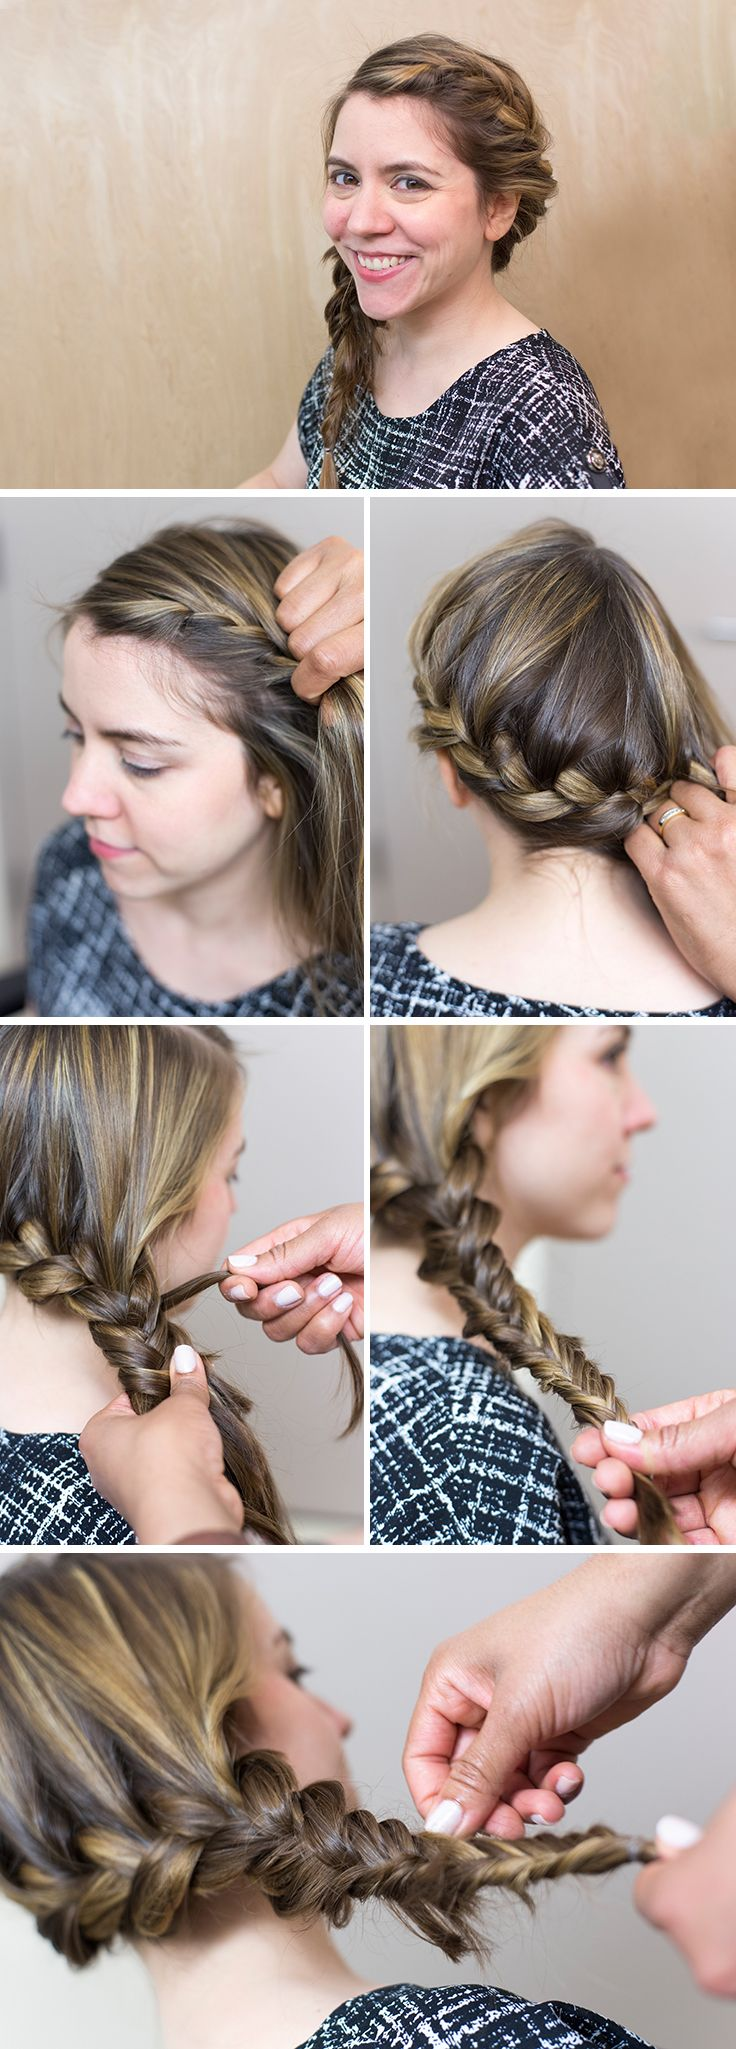 Get the look: a pretty, bohemian side fishtail braid for long hair. This style is perfect for everyday.